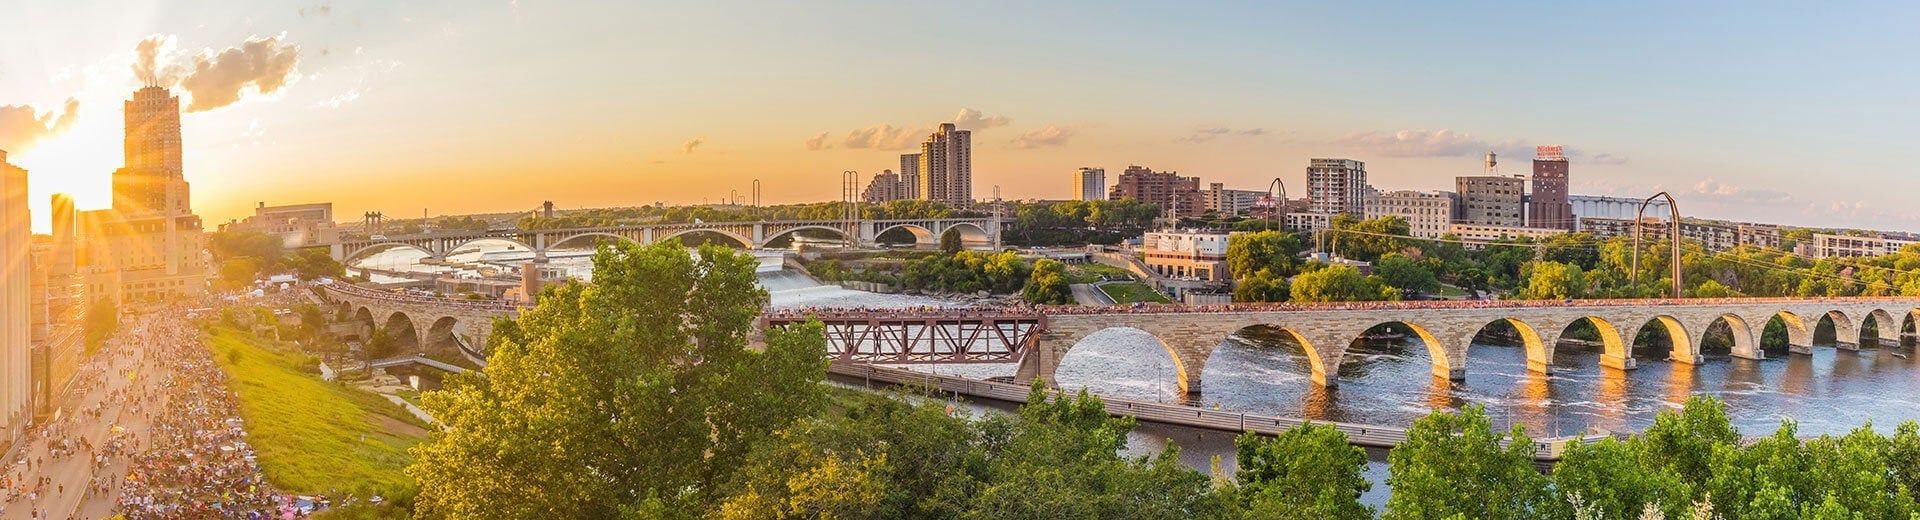 City Living Guide: What is it like to live in Minneapolis, MN?